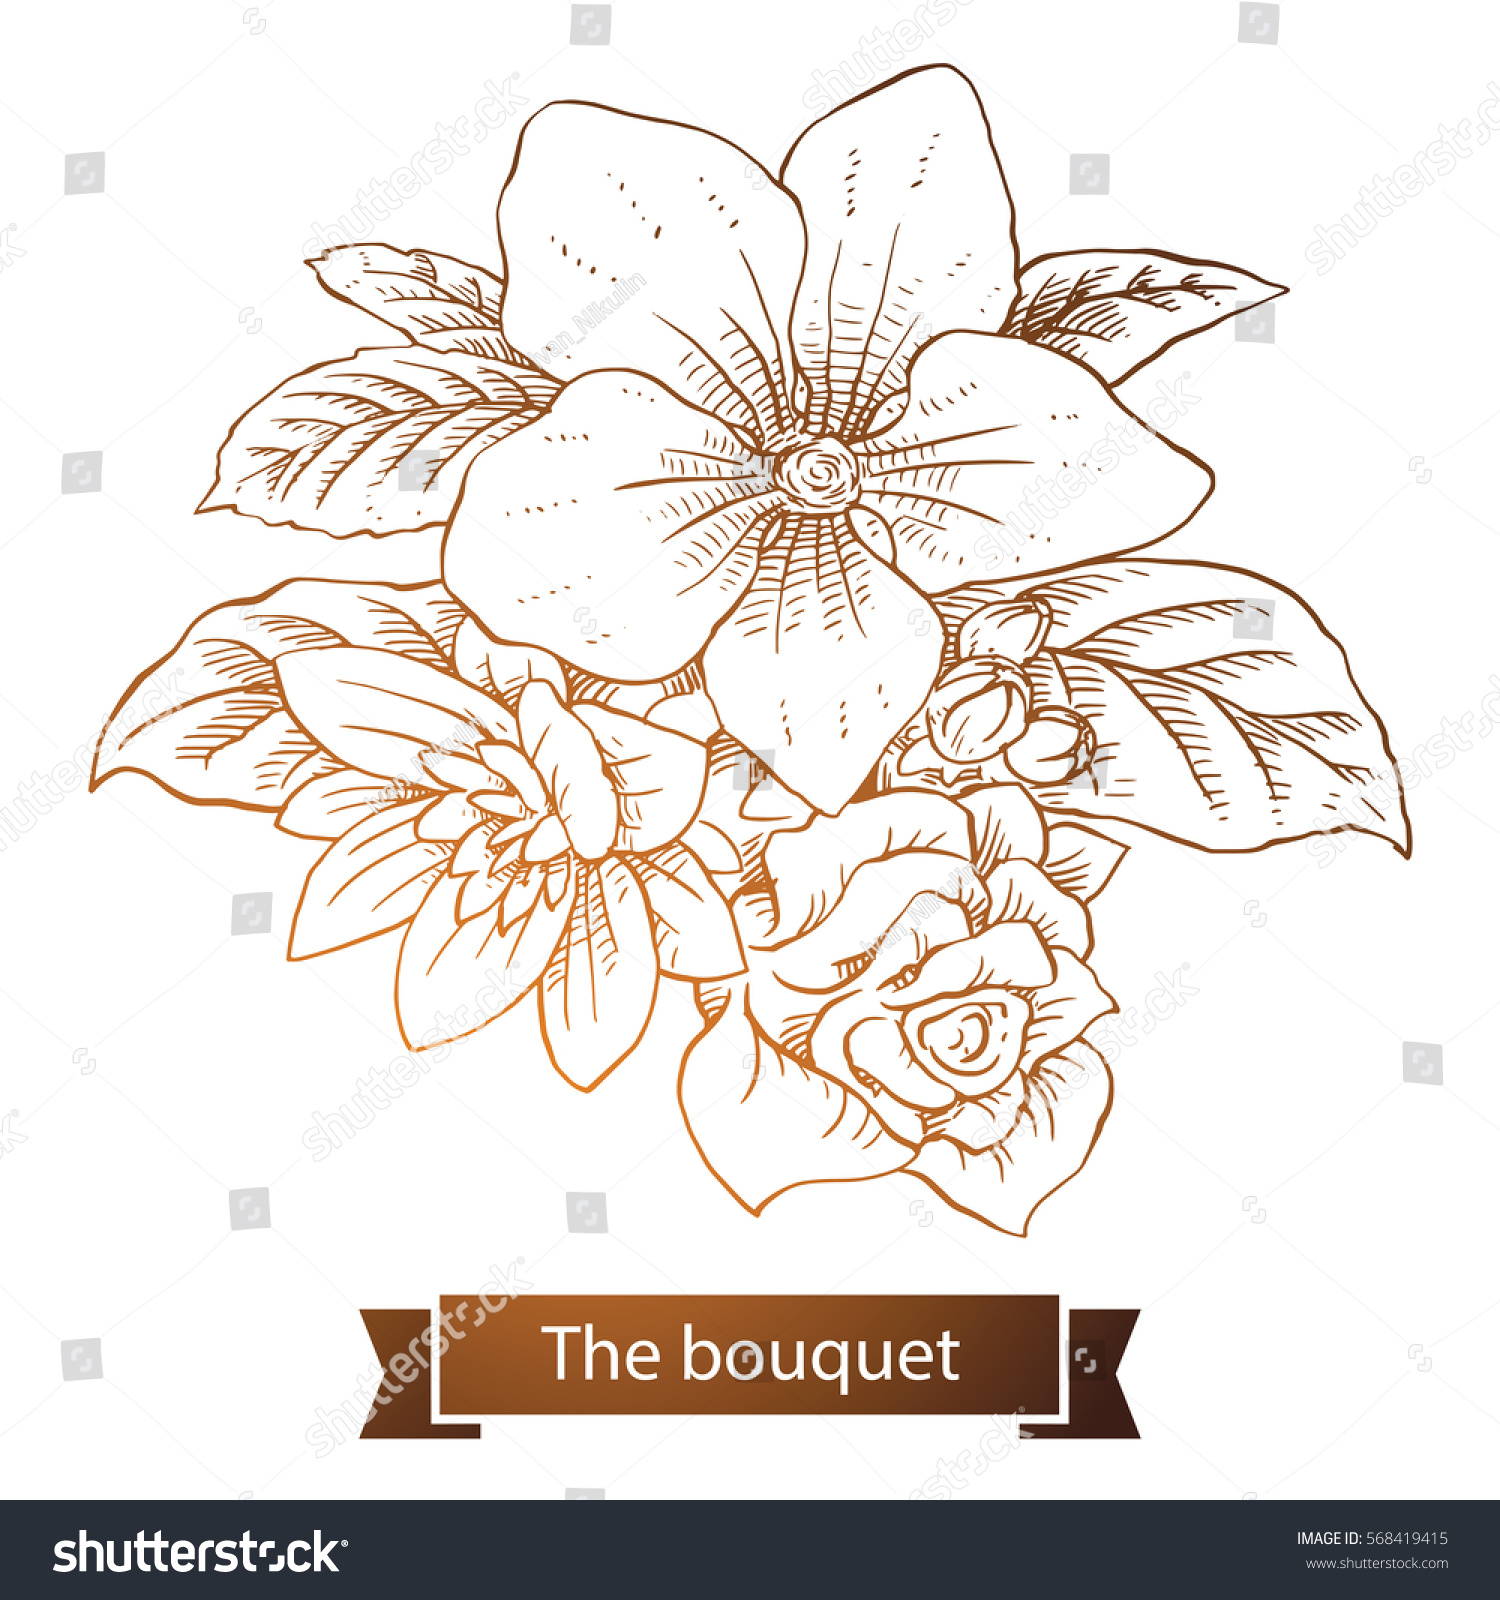 Vector Image Beautiful Bouquet Different Types Stock Vector Royalty